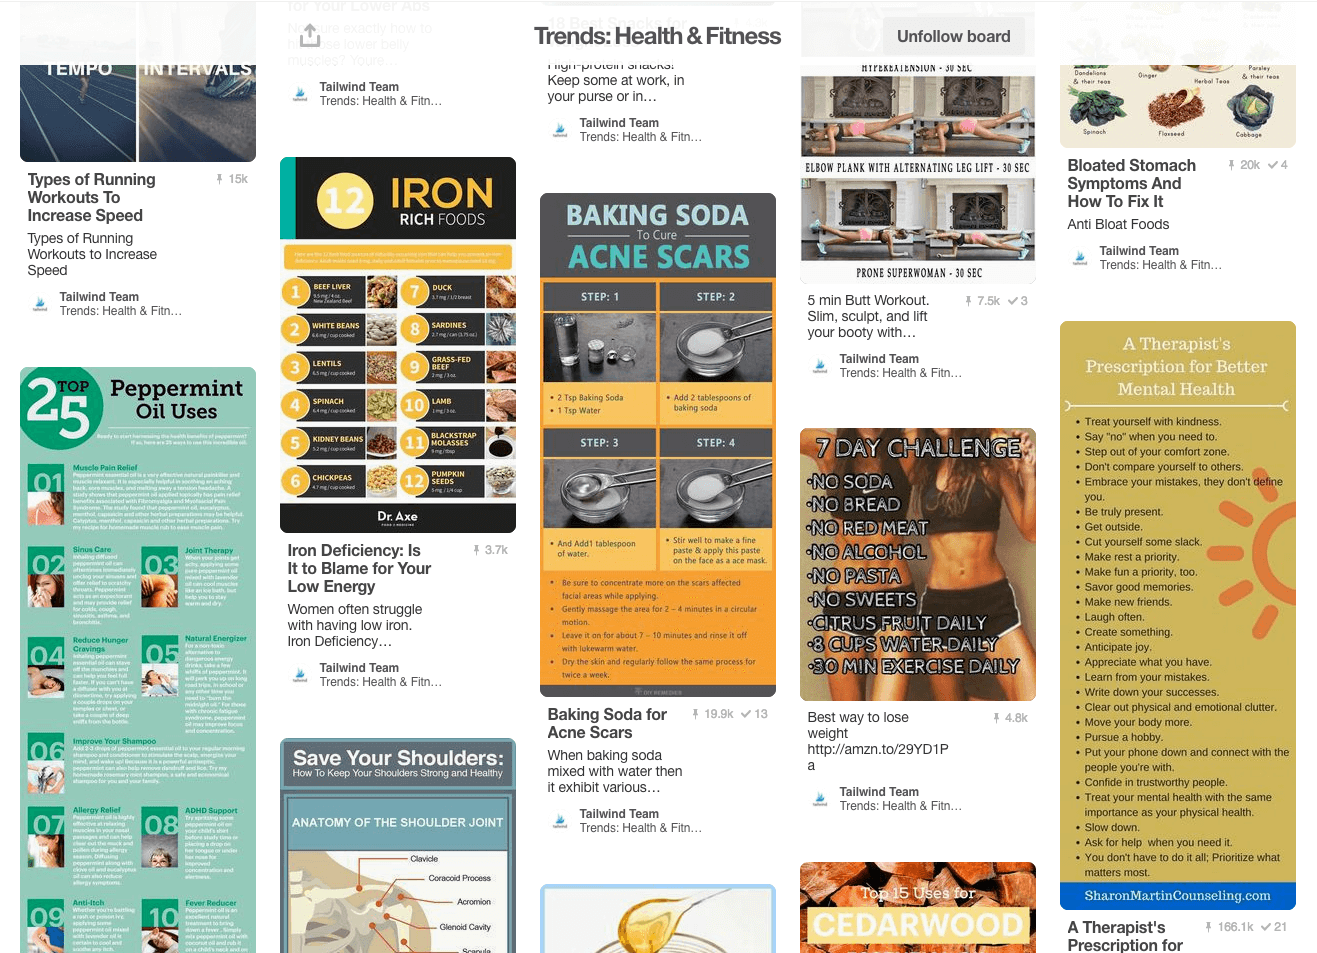 August Health & Fitness Trends on Pinterest